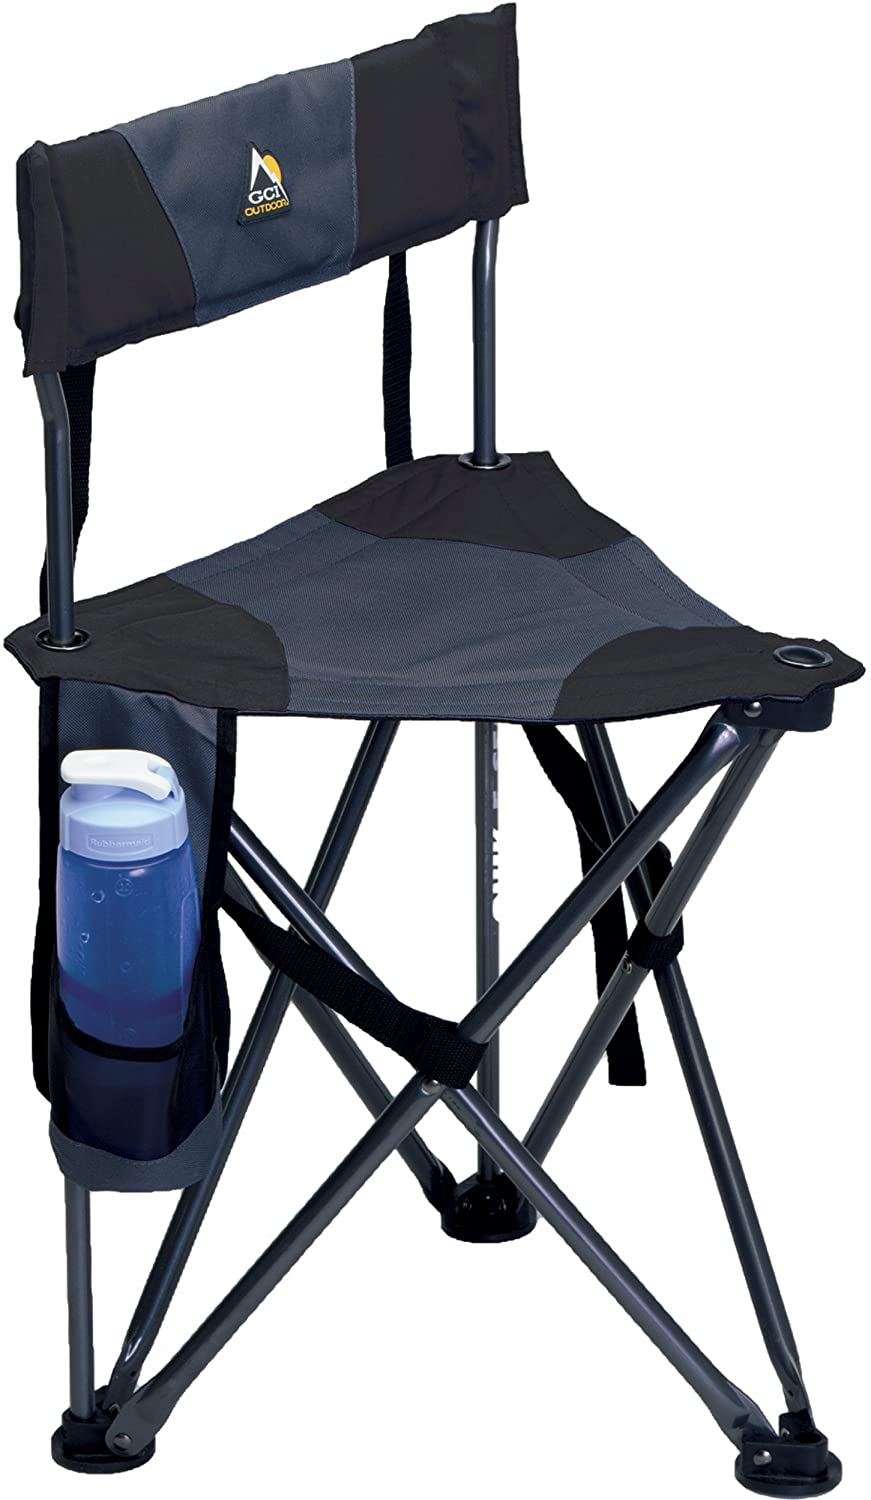 collapsible backpacking chair